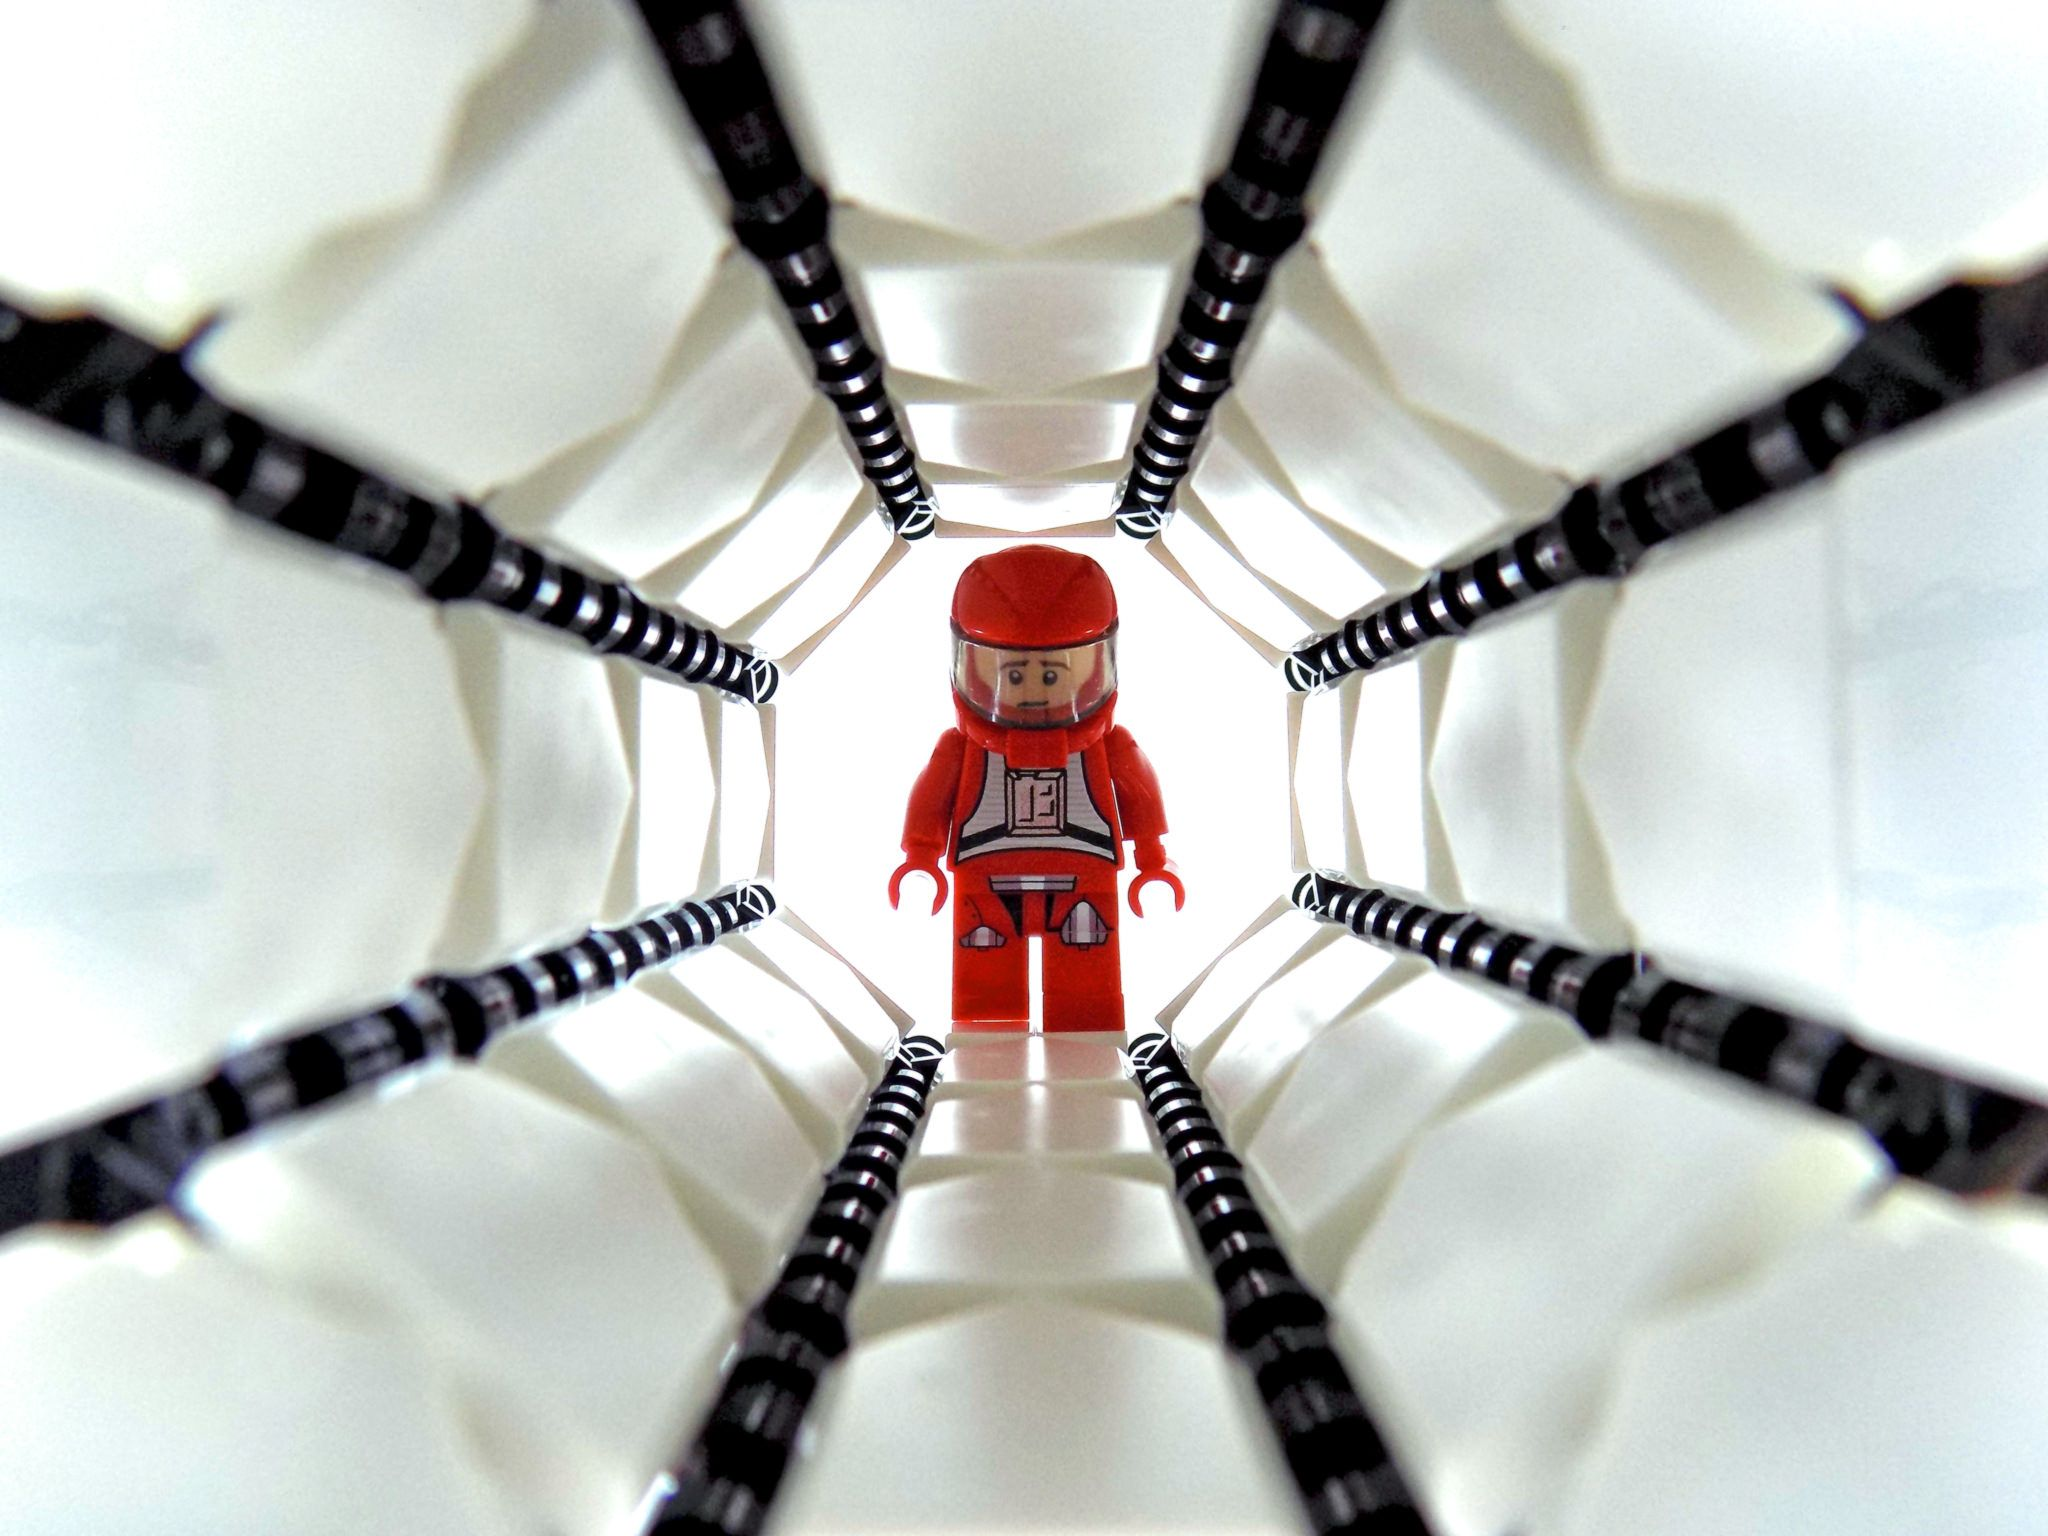 2001 A Space Odyssey Porn Video 2001: a space odyssey (with images) | space odyssey, 2001 a